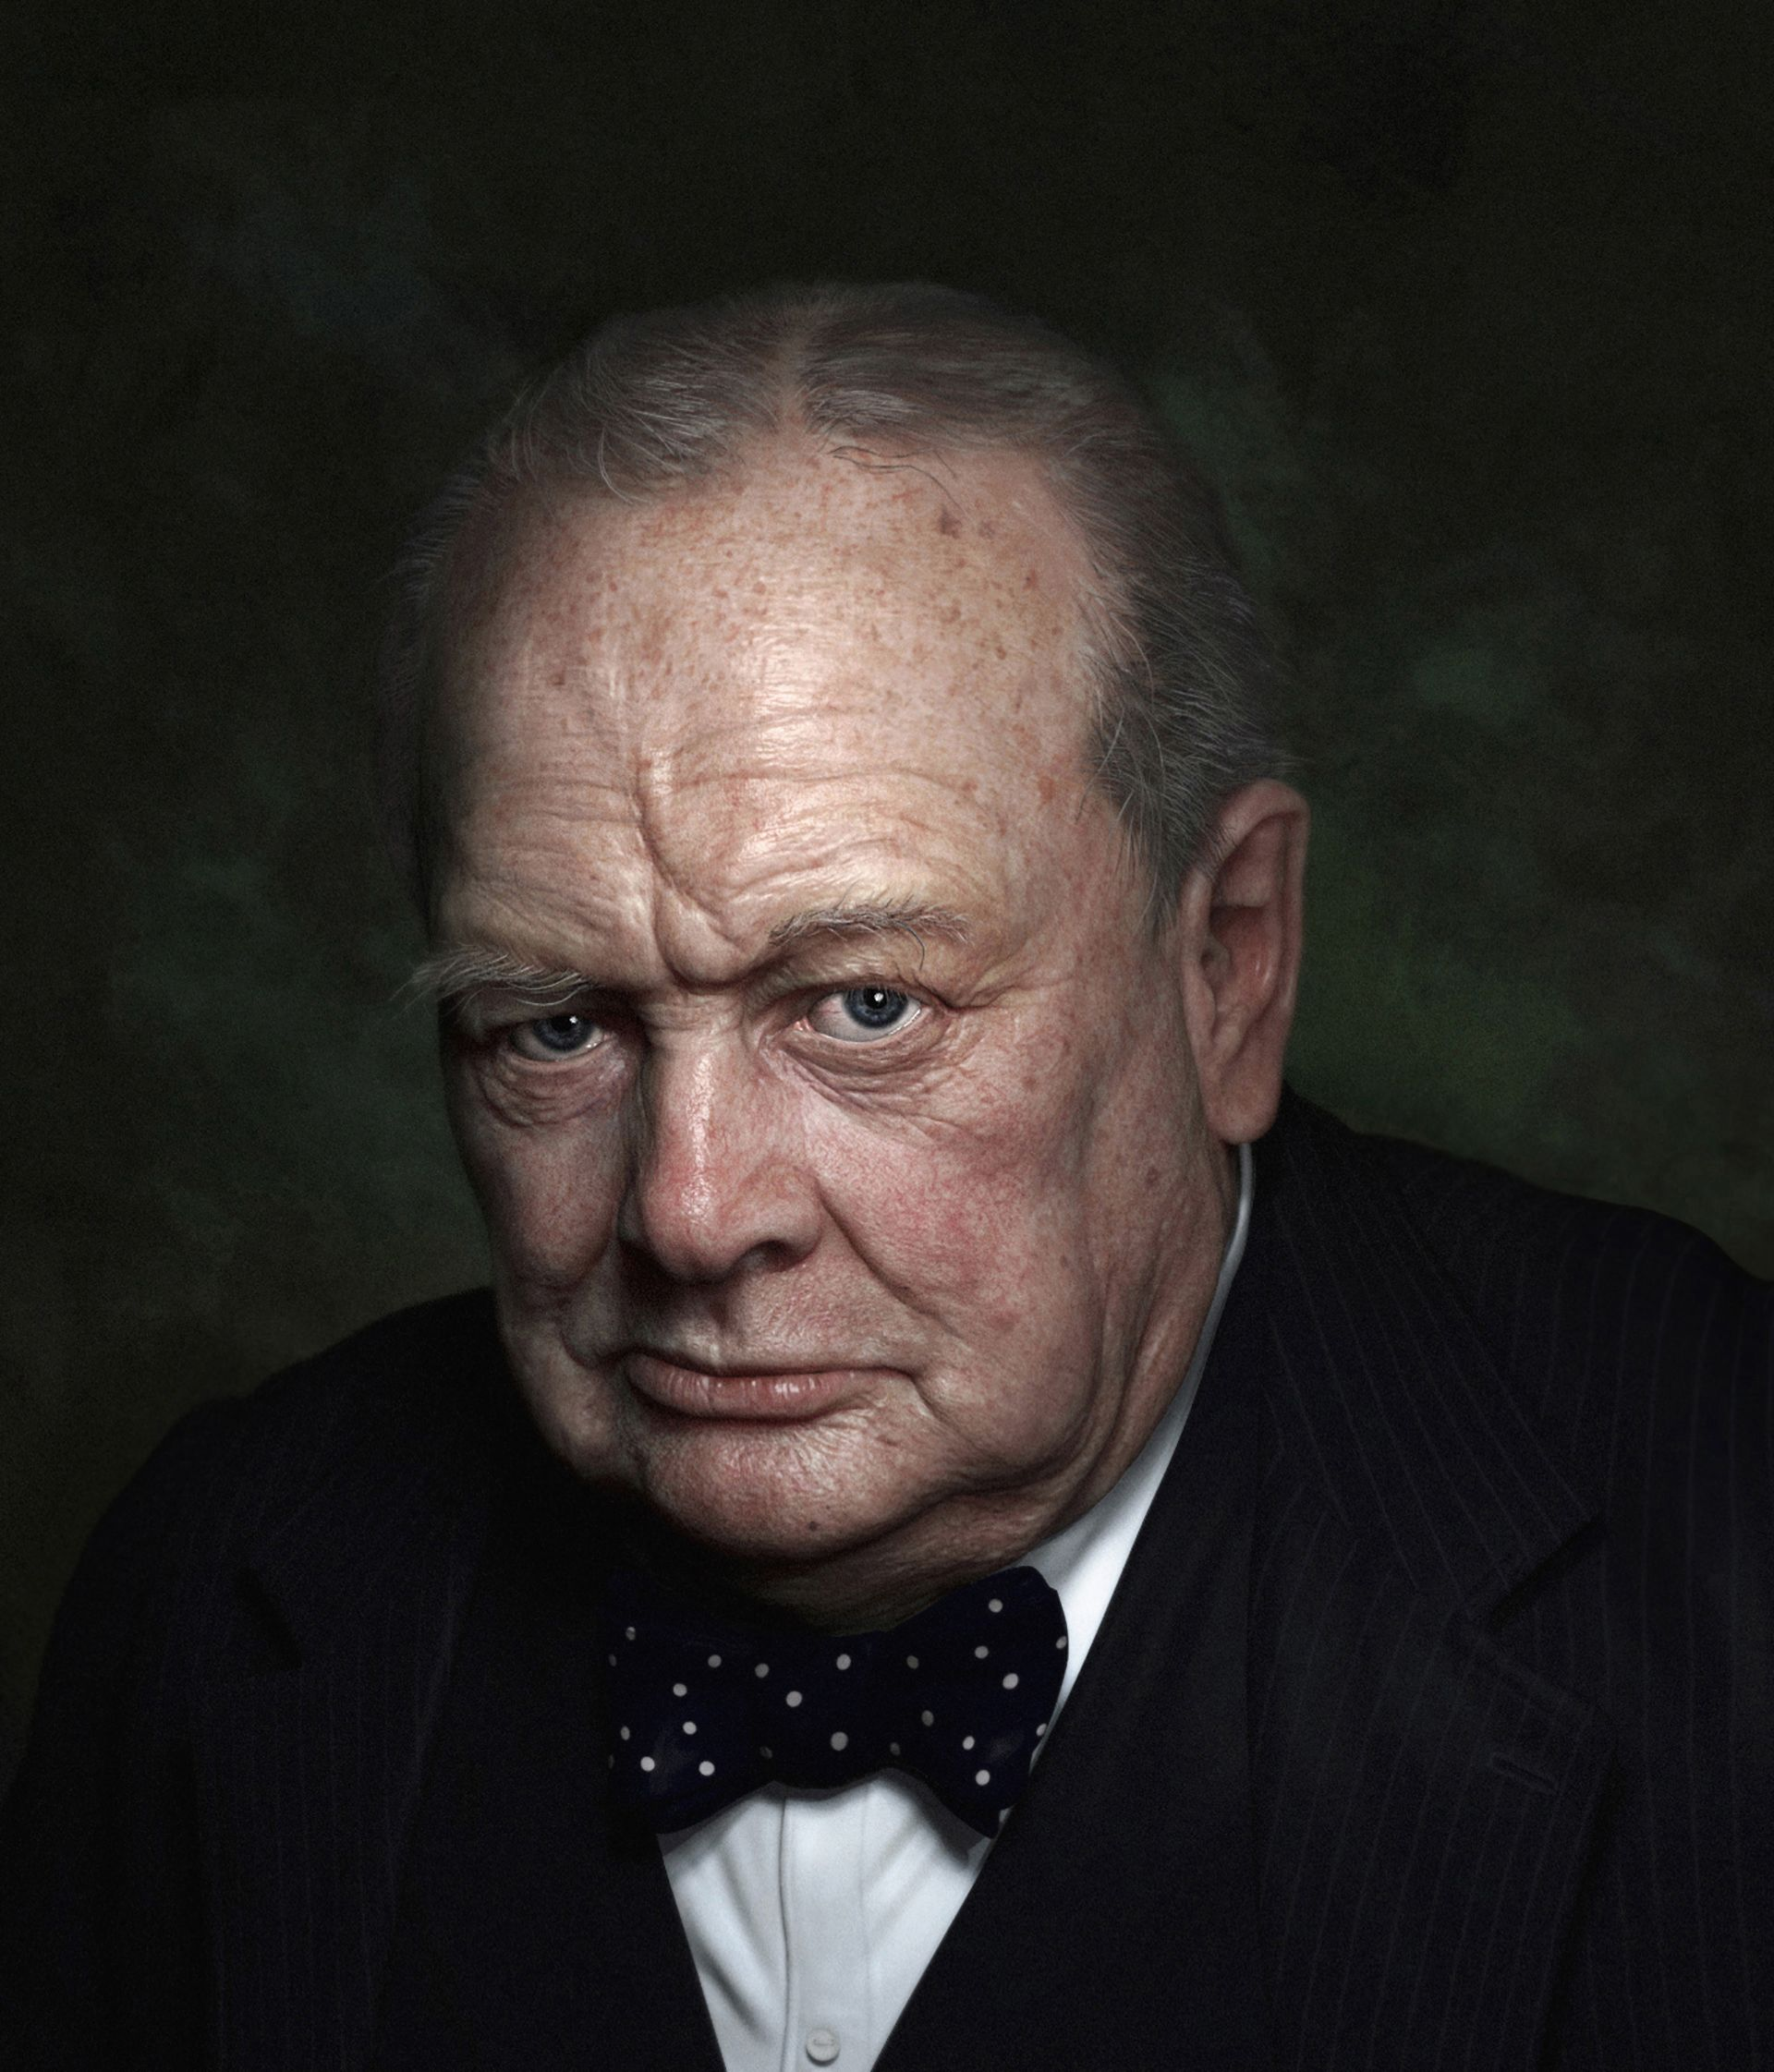 portrait of churchill 80th birthday